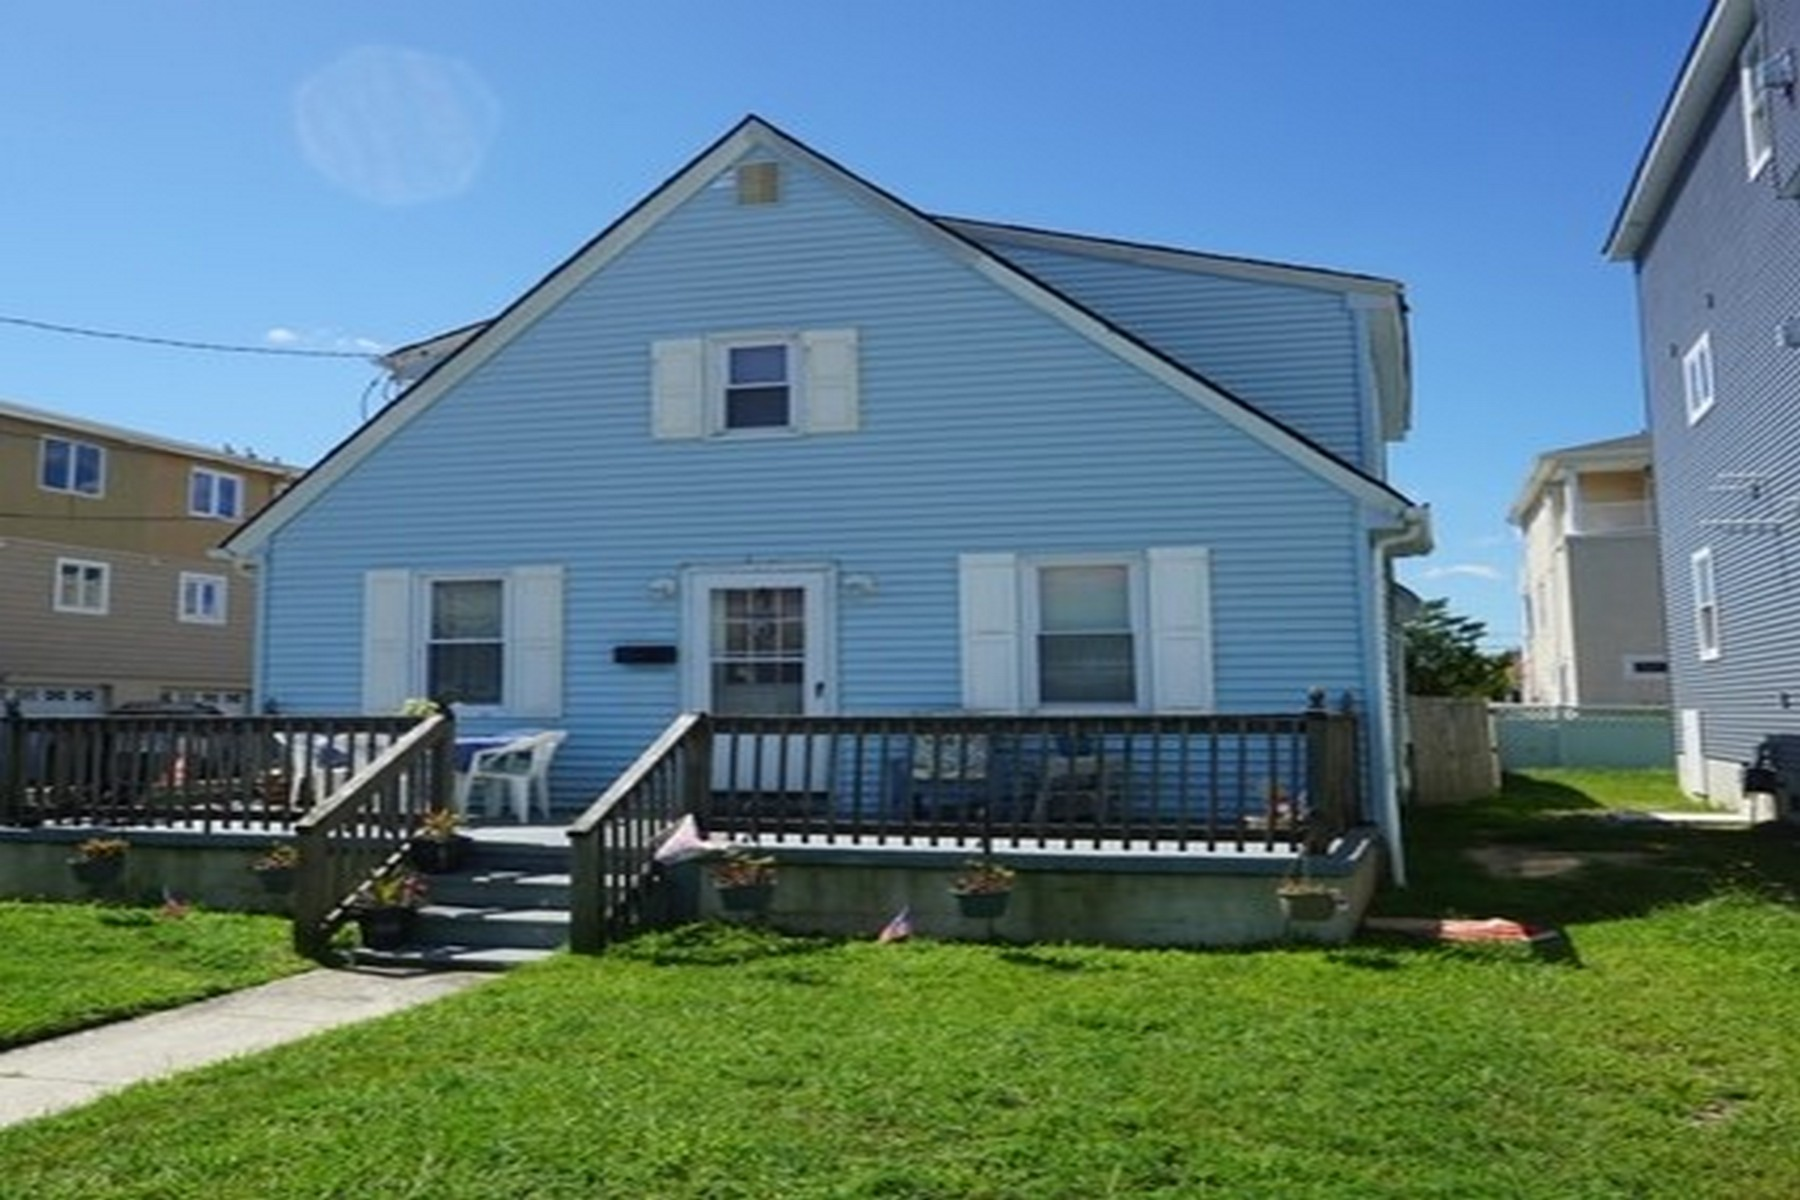 Duplex Homes for Sale at 222 N 9th Street, Upstairs, Brigantine, New Jersey 08203 United States